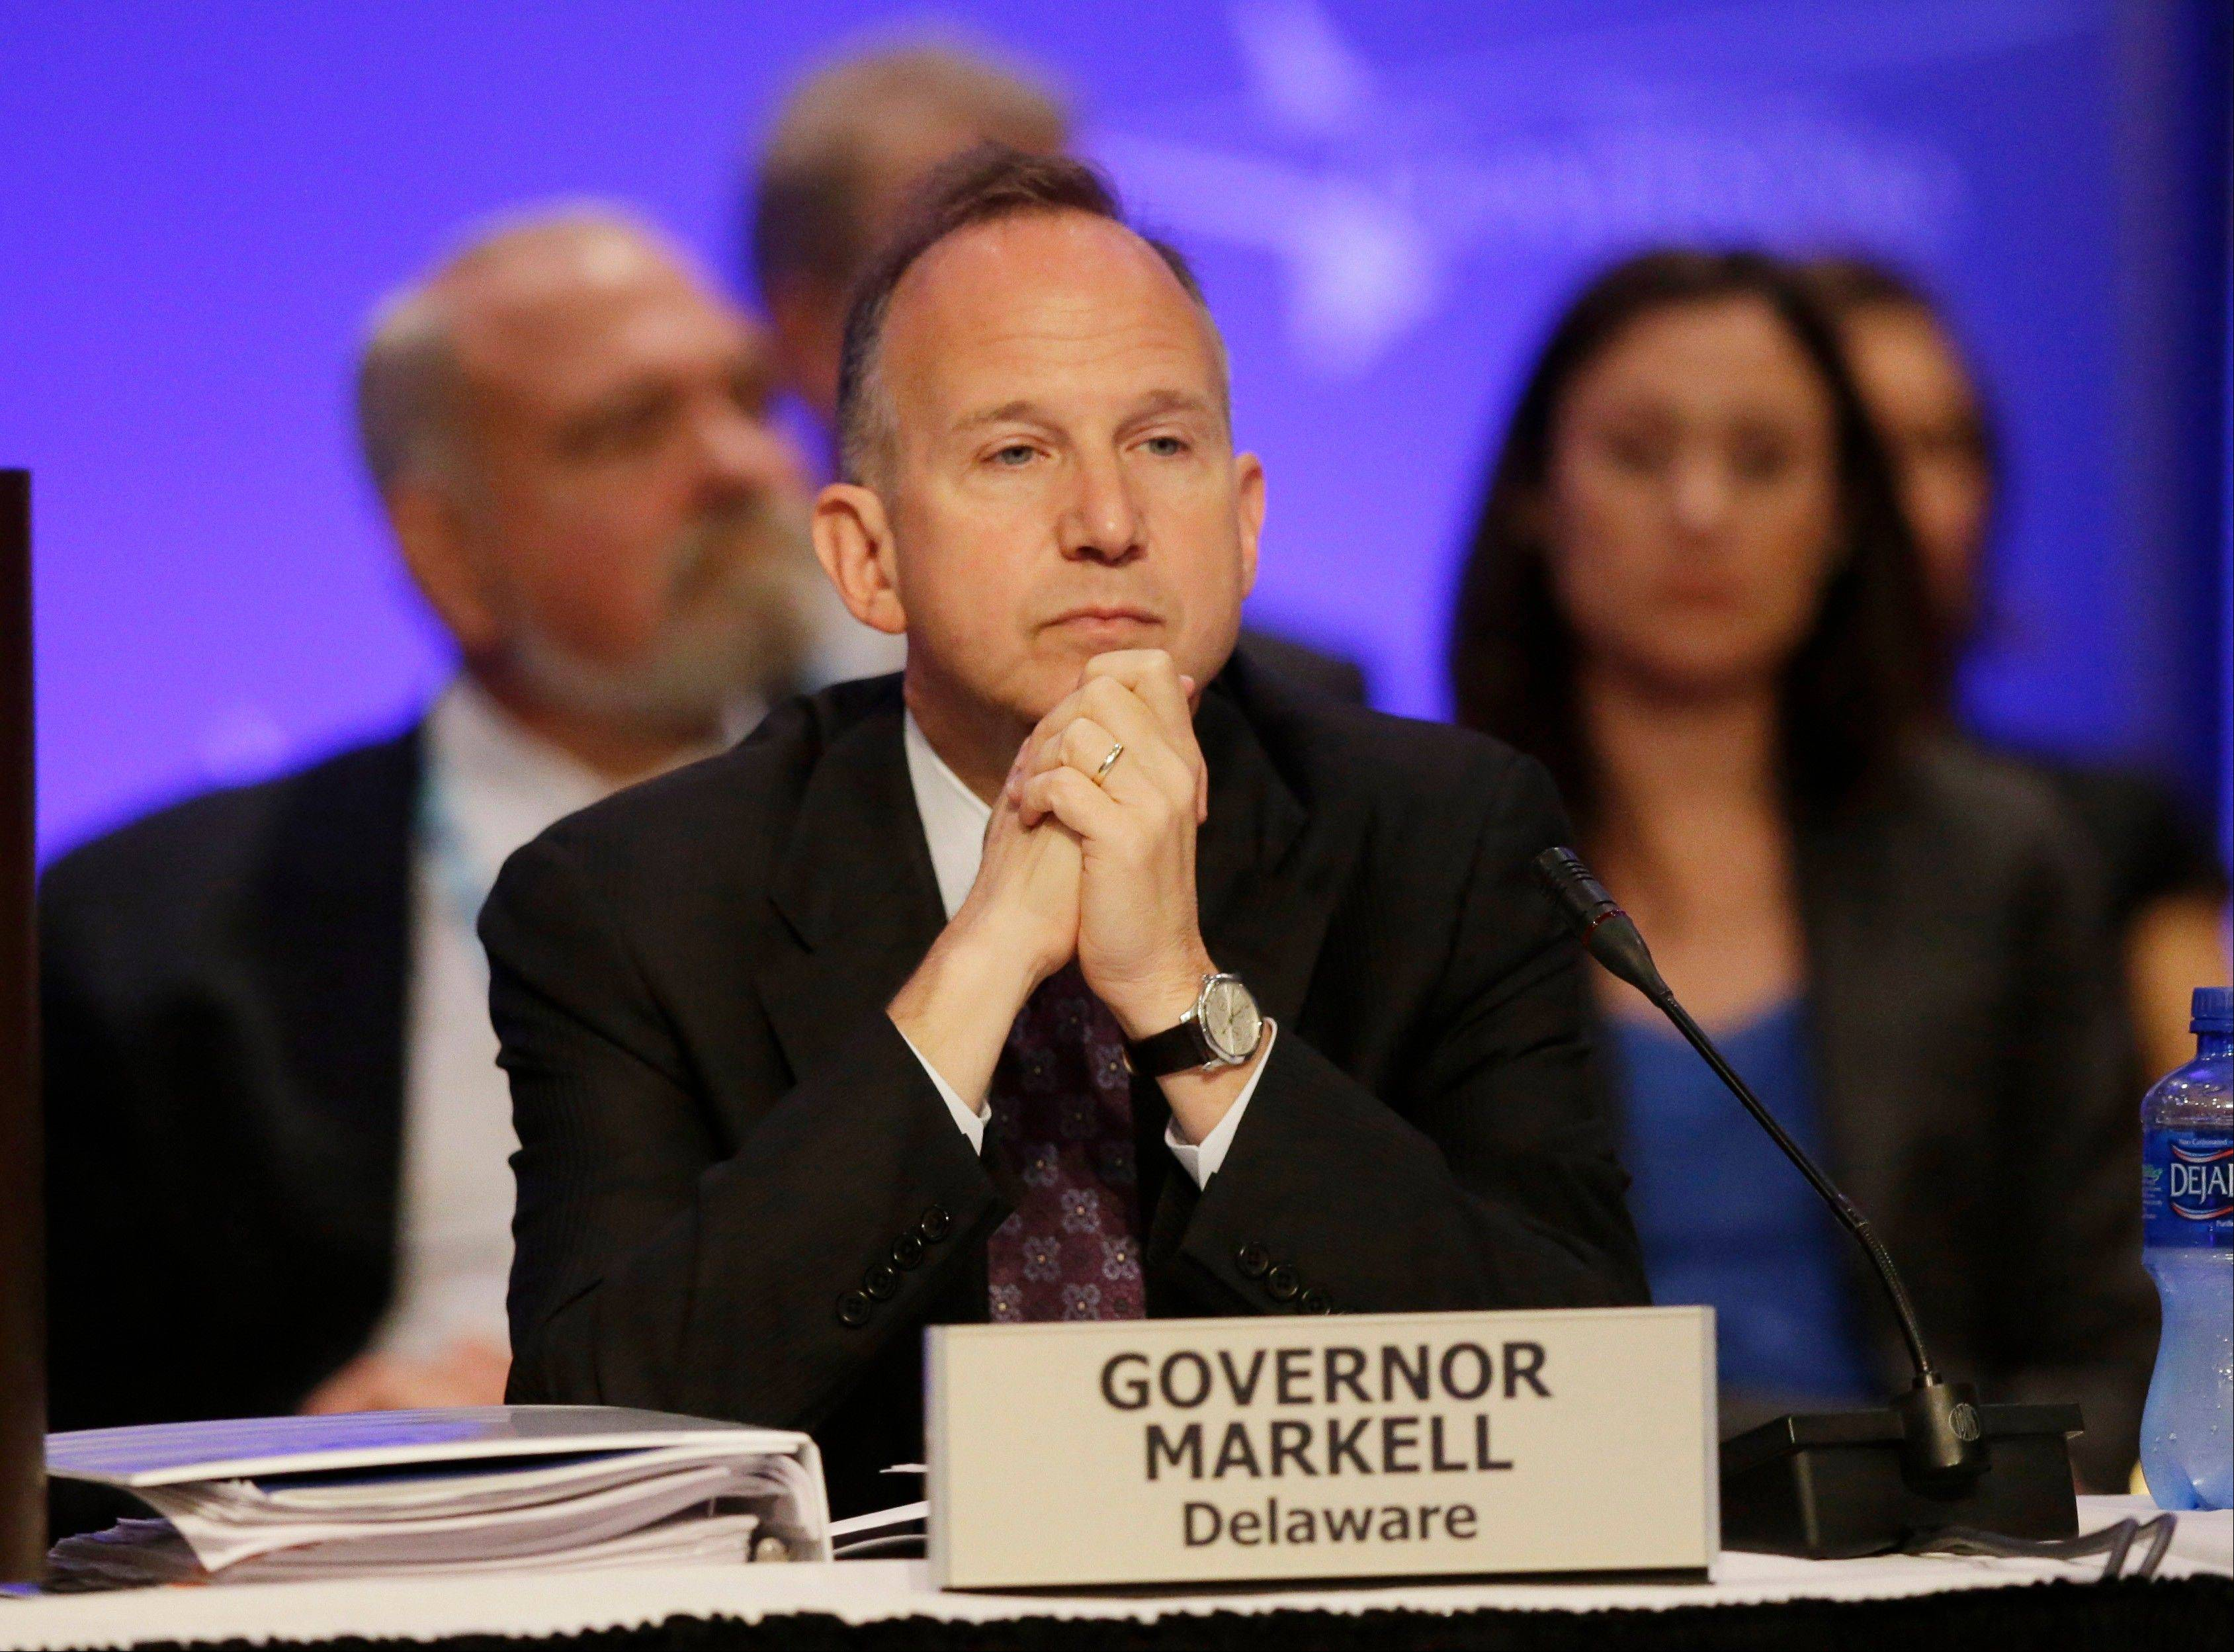 Delaware Gov. Jack Markell listens during a session of the National Governors Association meeting Sunday, Aug. 4, 2013 in Milwaukee. Democratic governors say they are nervous about getting the new federal health care law implemented but add they will be better positioned in next year�s elections than many of their Republican counterparts who have resisted the far-reaching and politically polarizing measure.